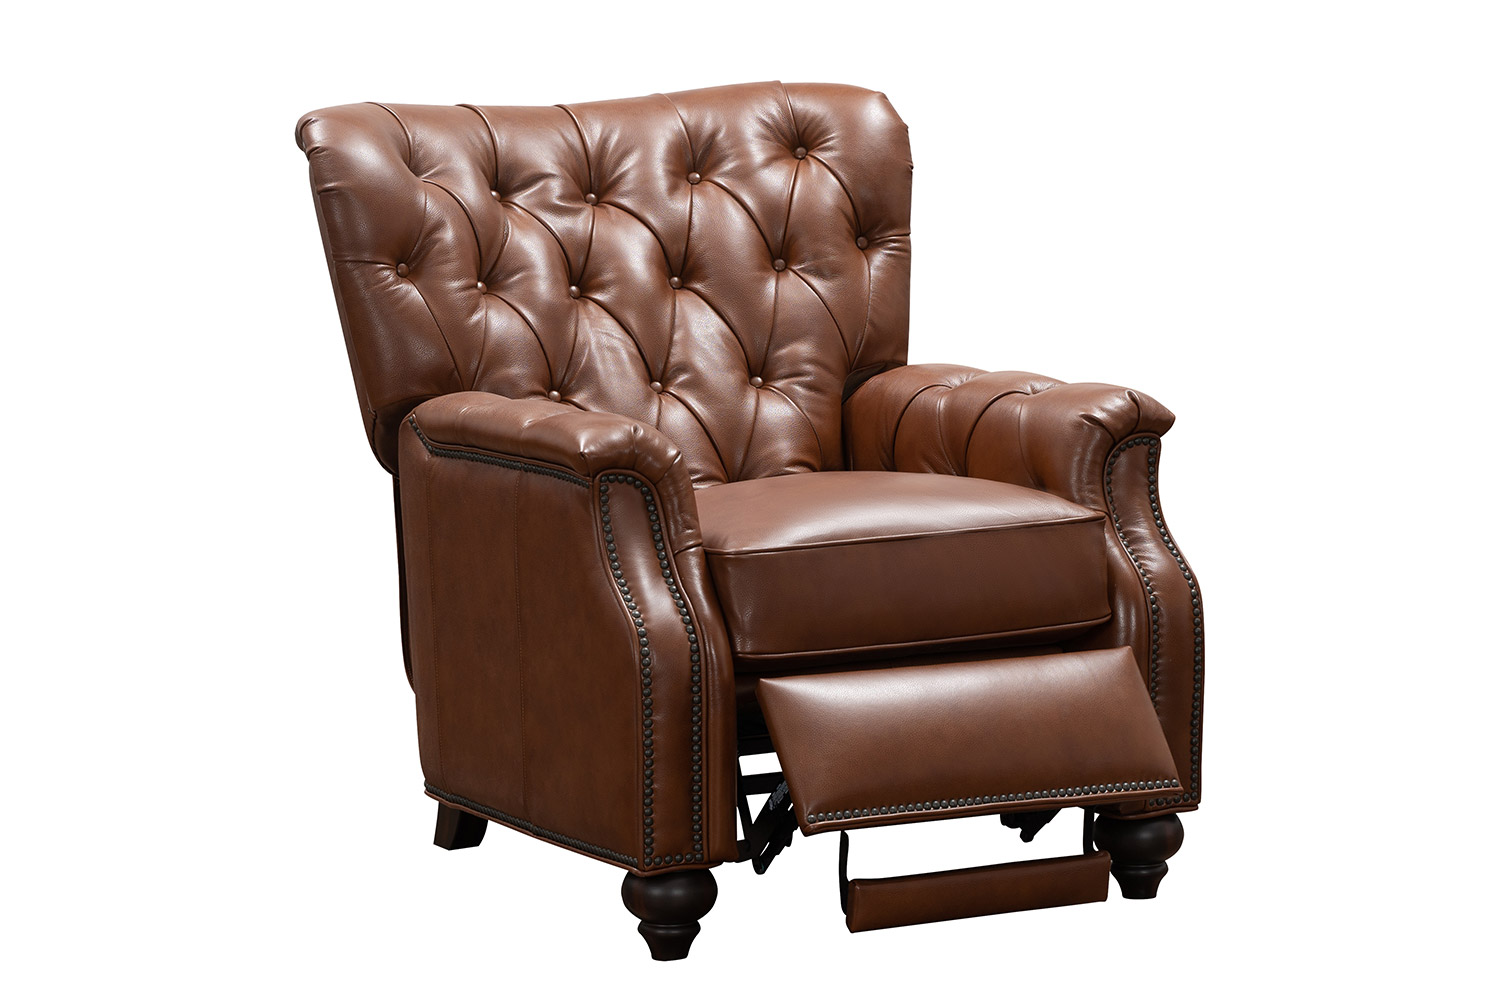 Barcalounger Lombard Recliner Chair - Ashford Bitters/All Leather